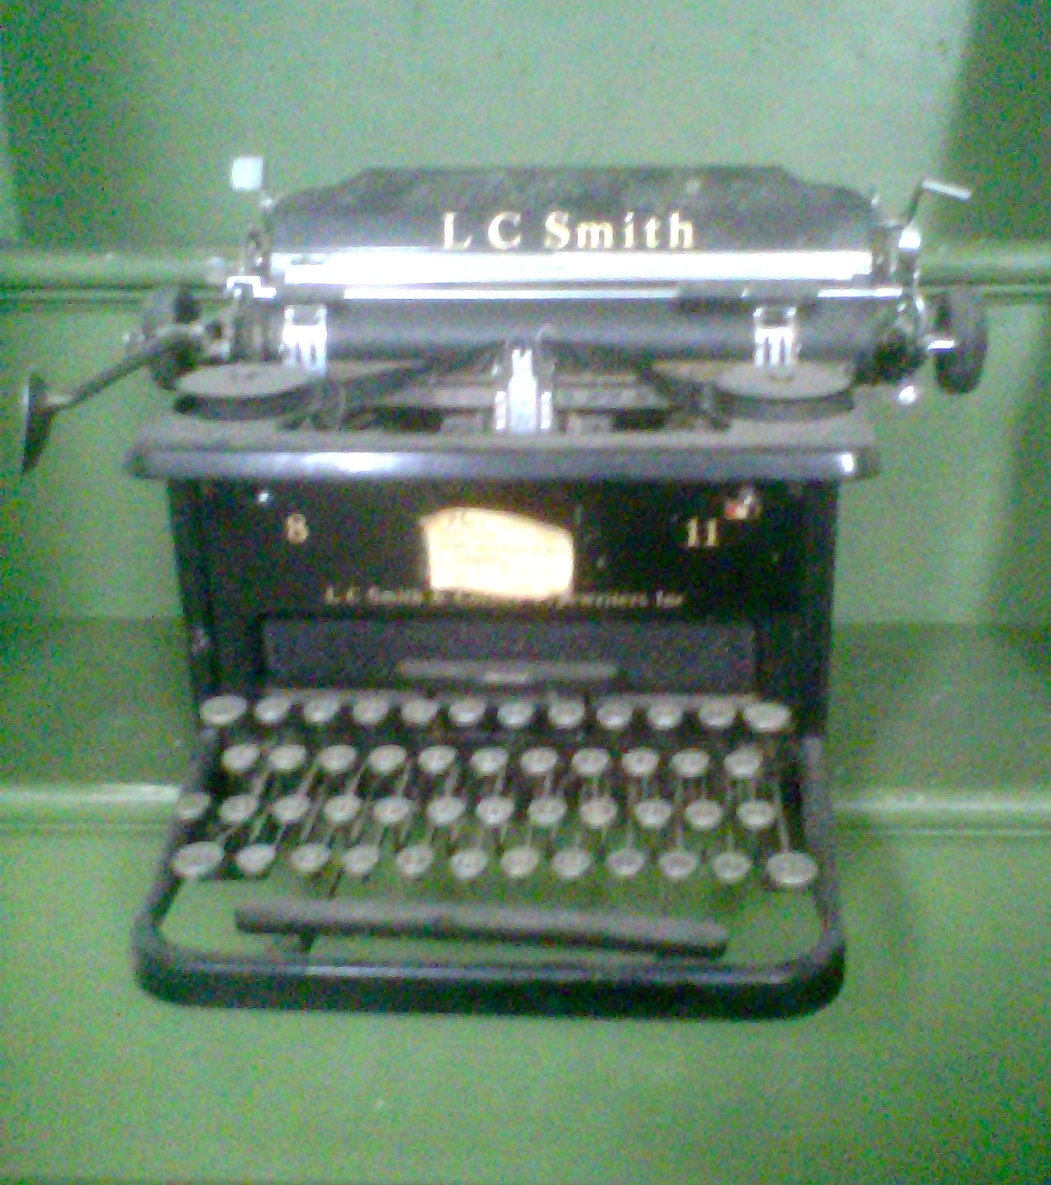 My First Interviews Were Written on this Typewriter